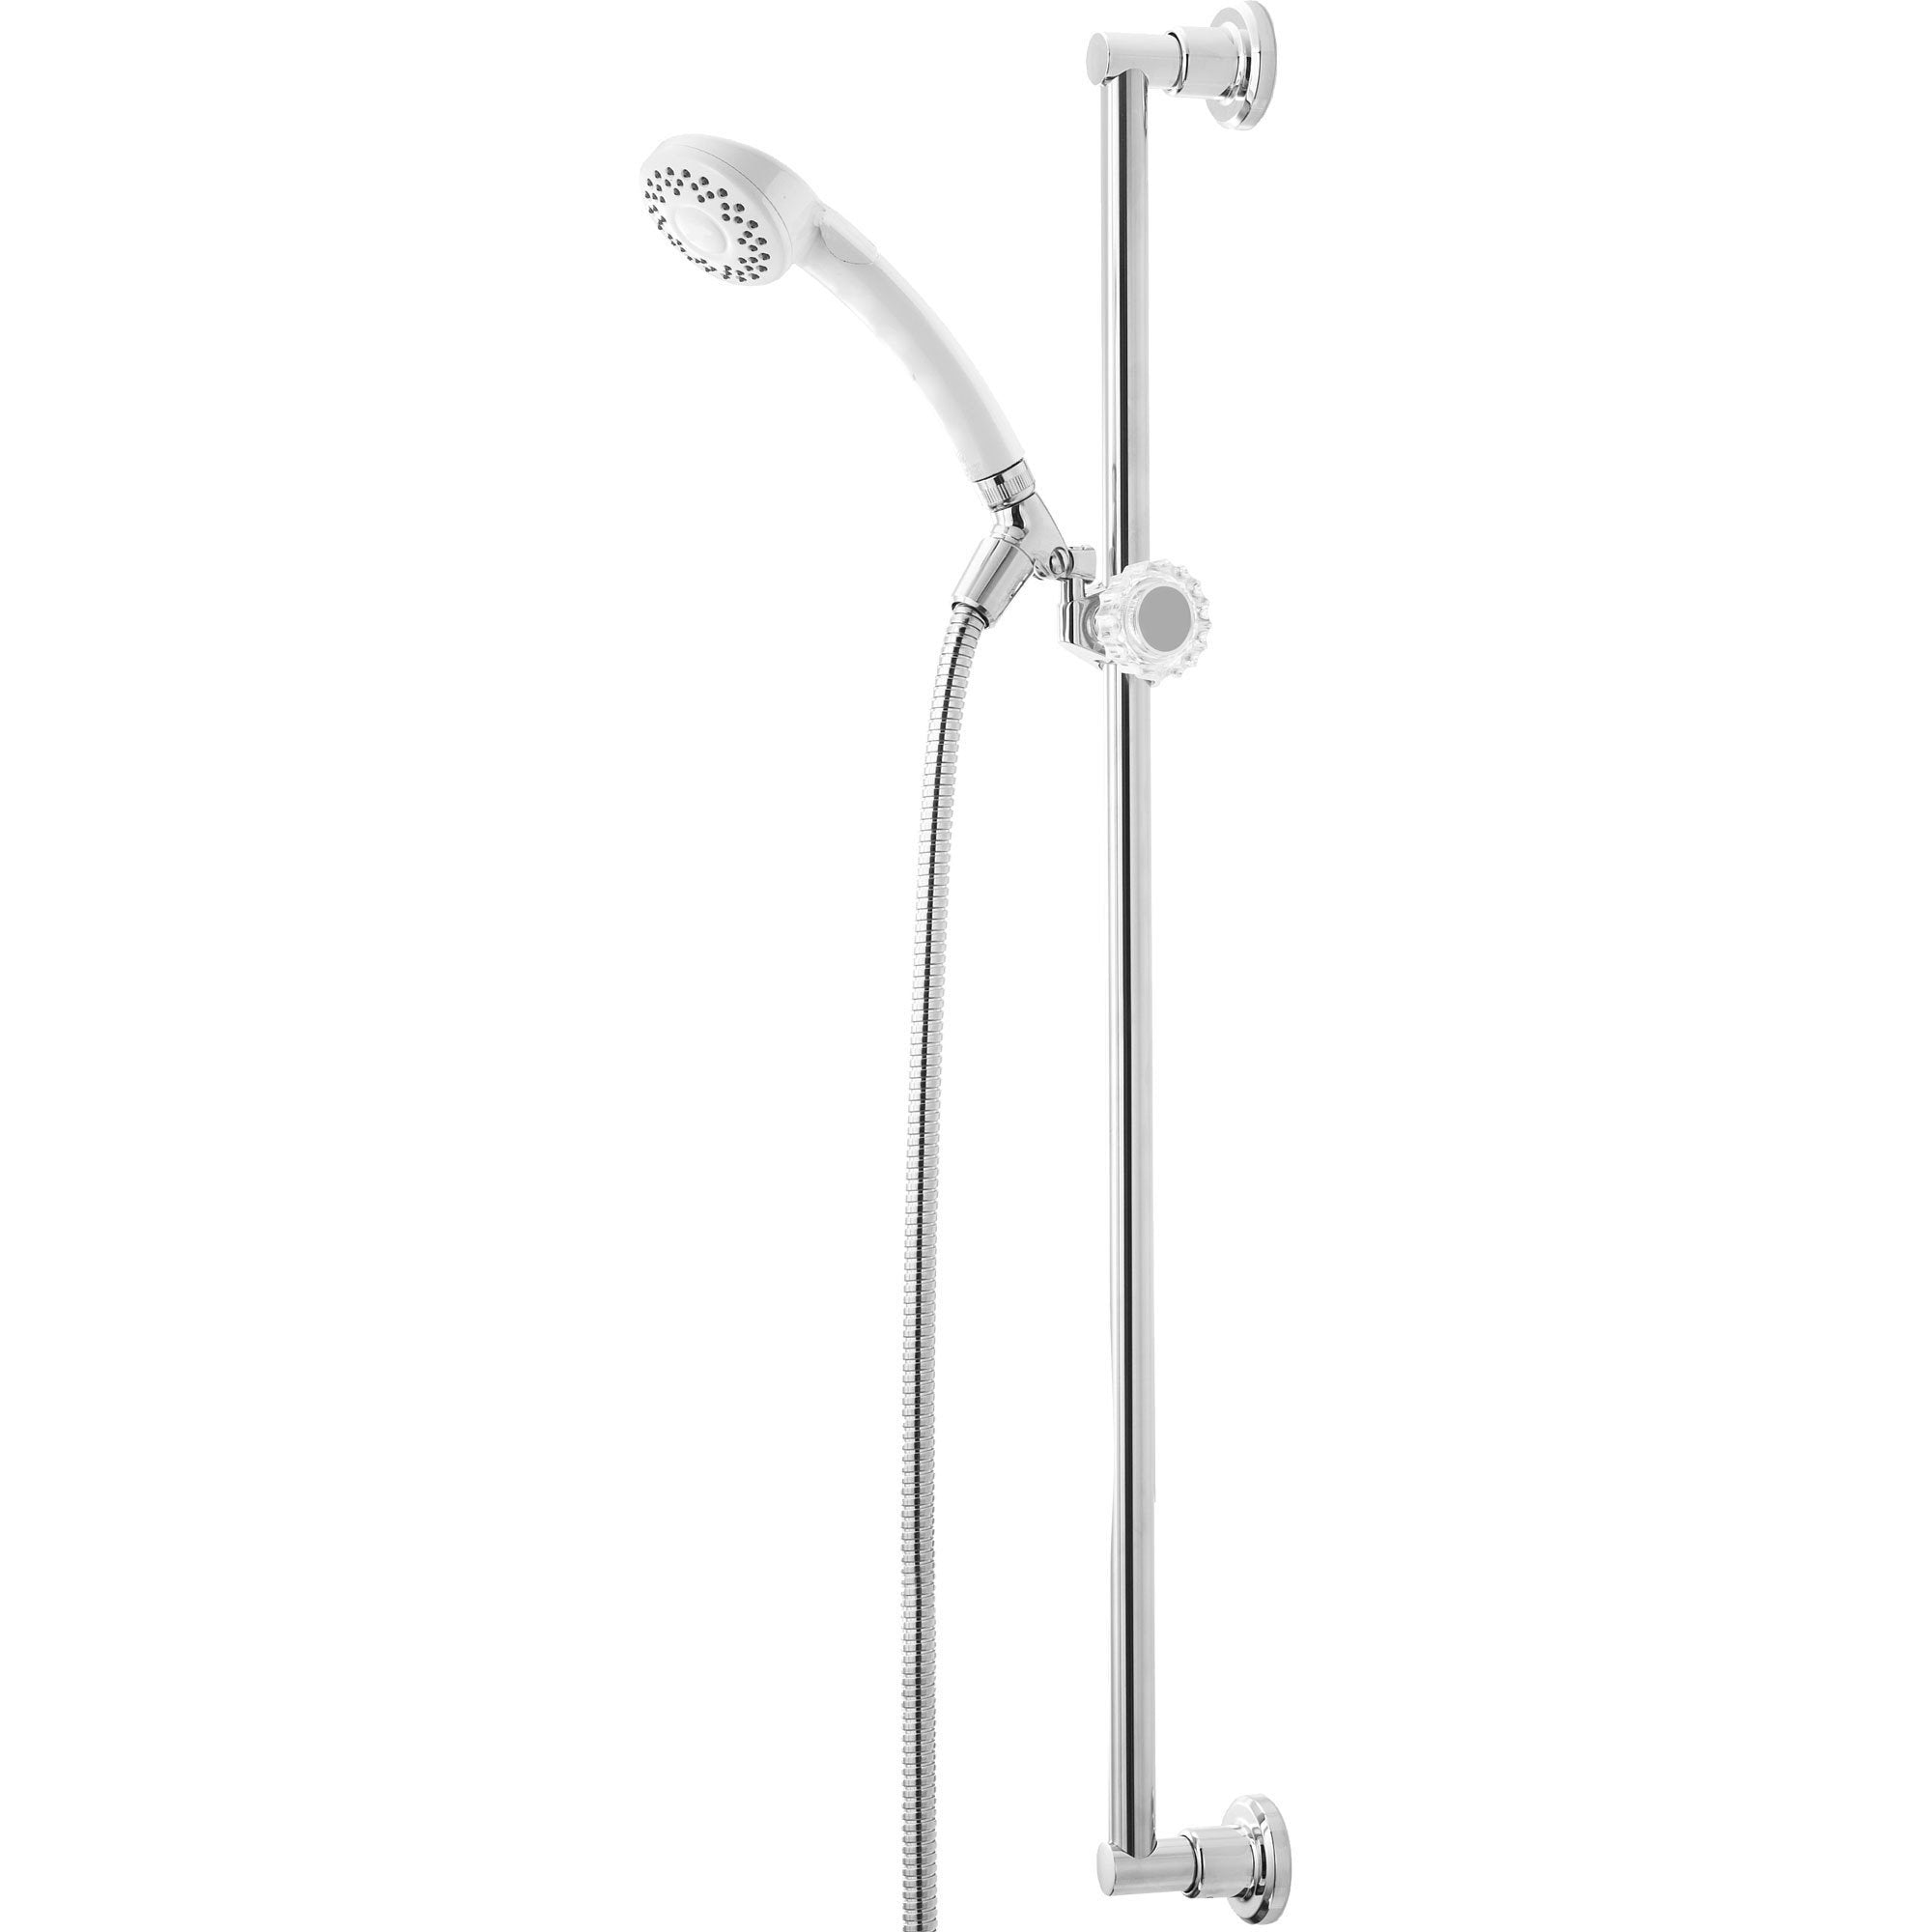 Delta 30-inch 1-Spray White Finish Handshower Faucet with Slide Bar 561086